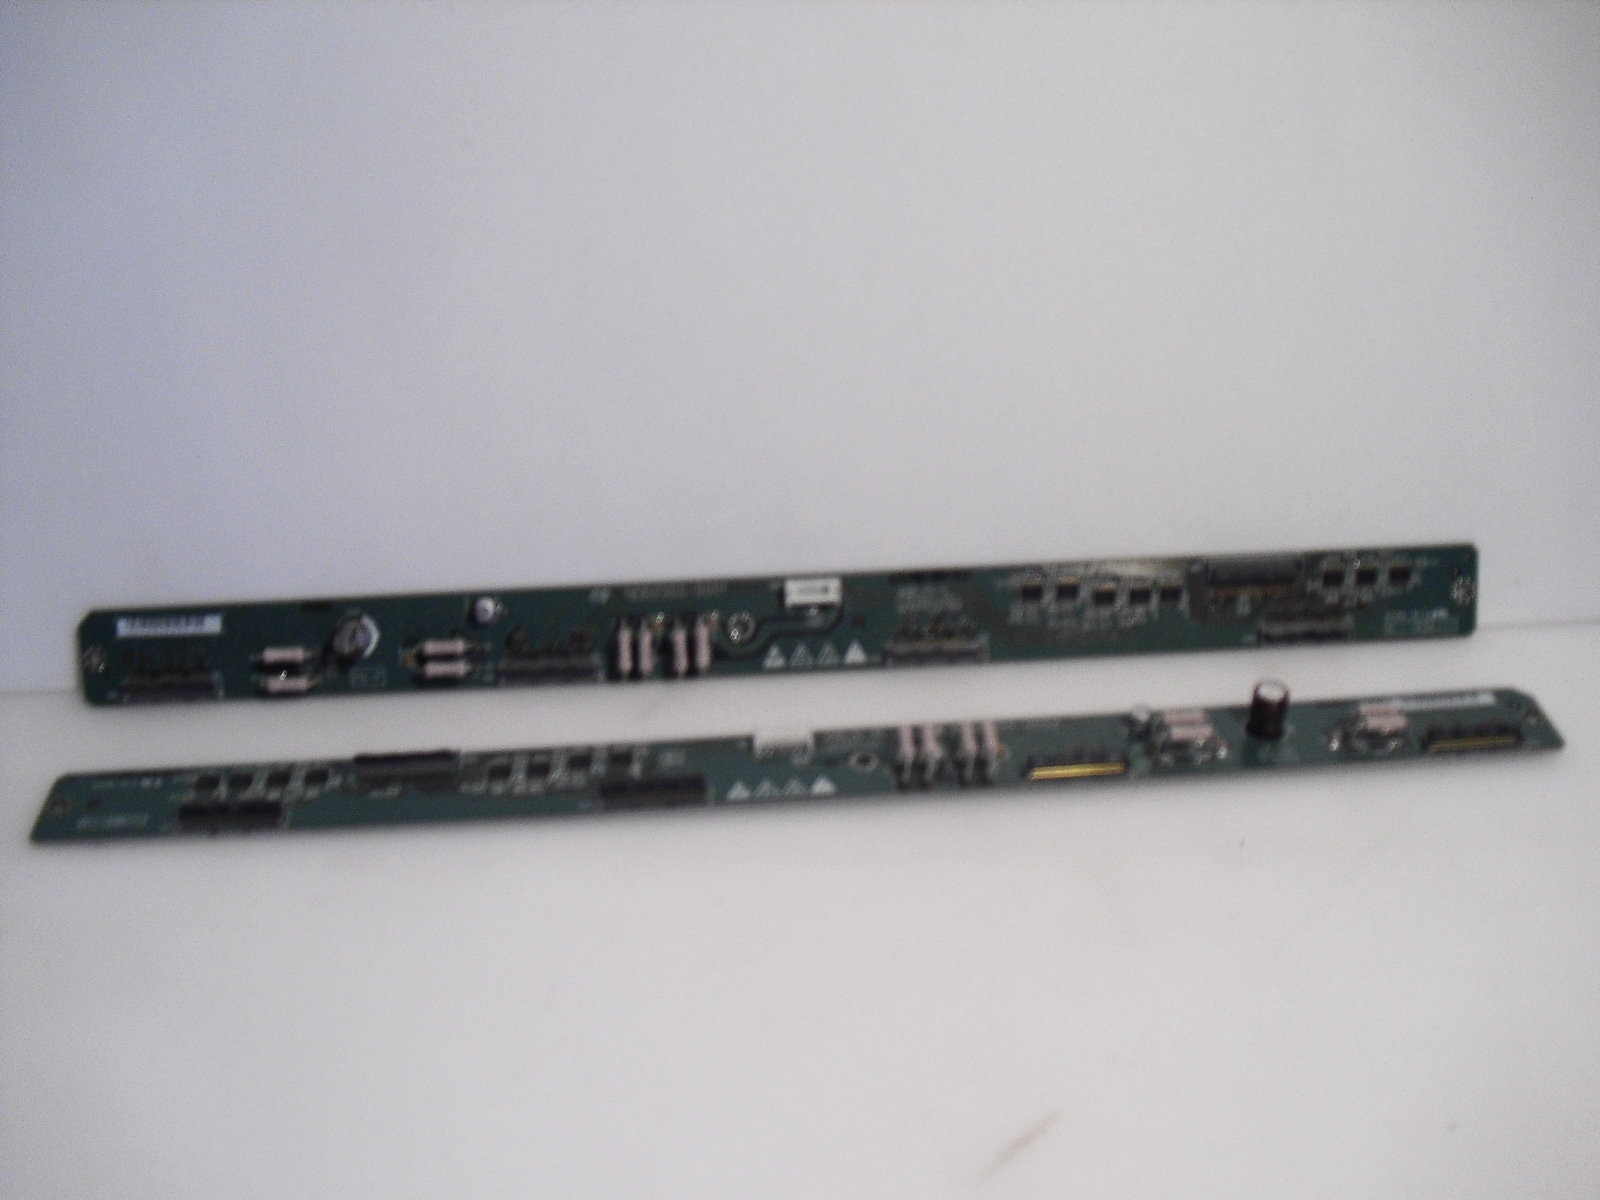 Primary image for nd60300-0001,   nd60300-0002   buffers   for  hitachi   42hdx61